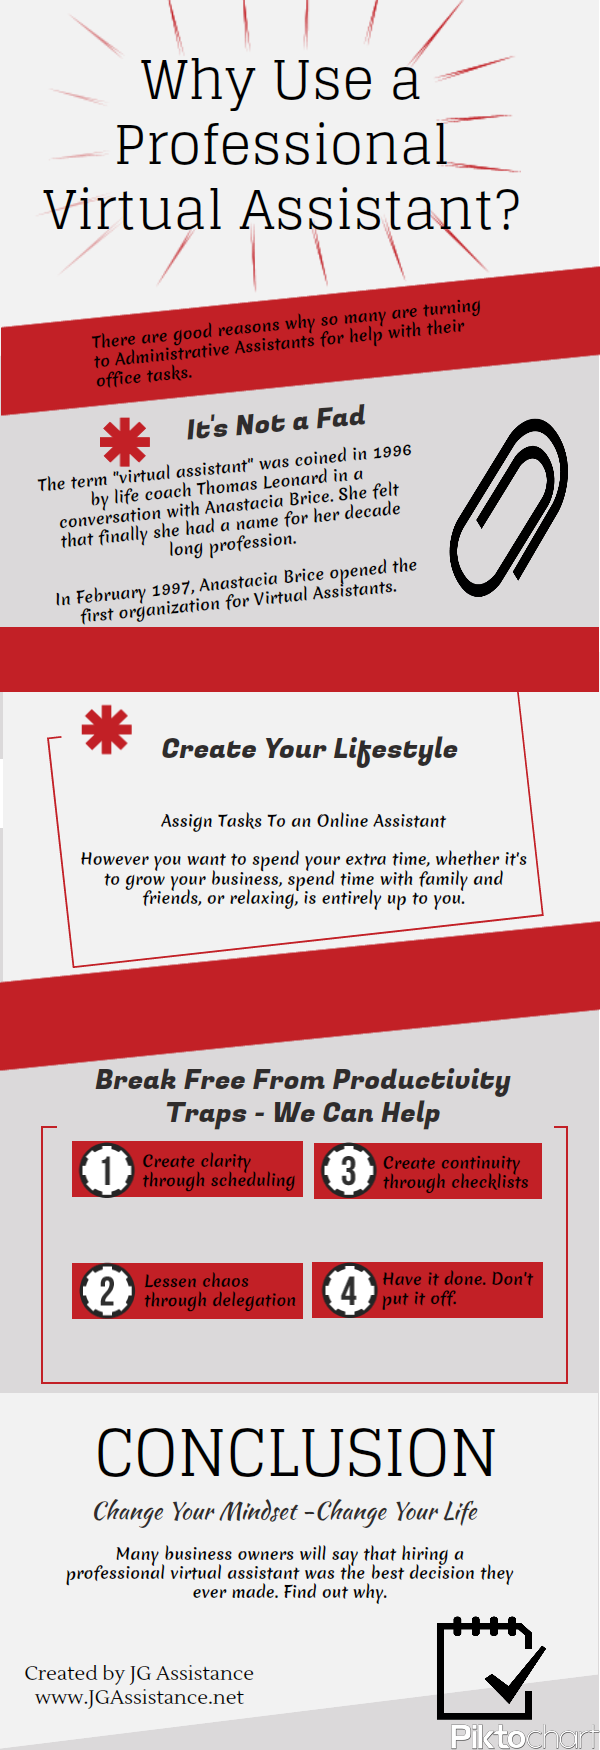 Why Use a Professional Virtual Assistant - Infographic